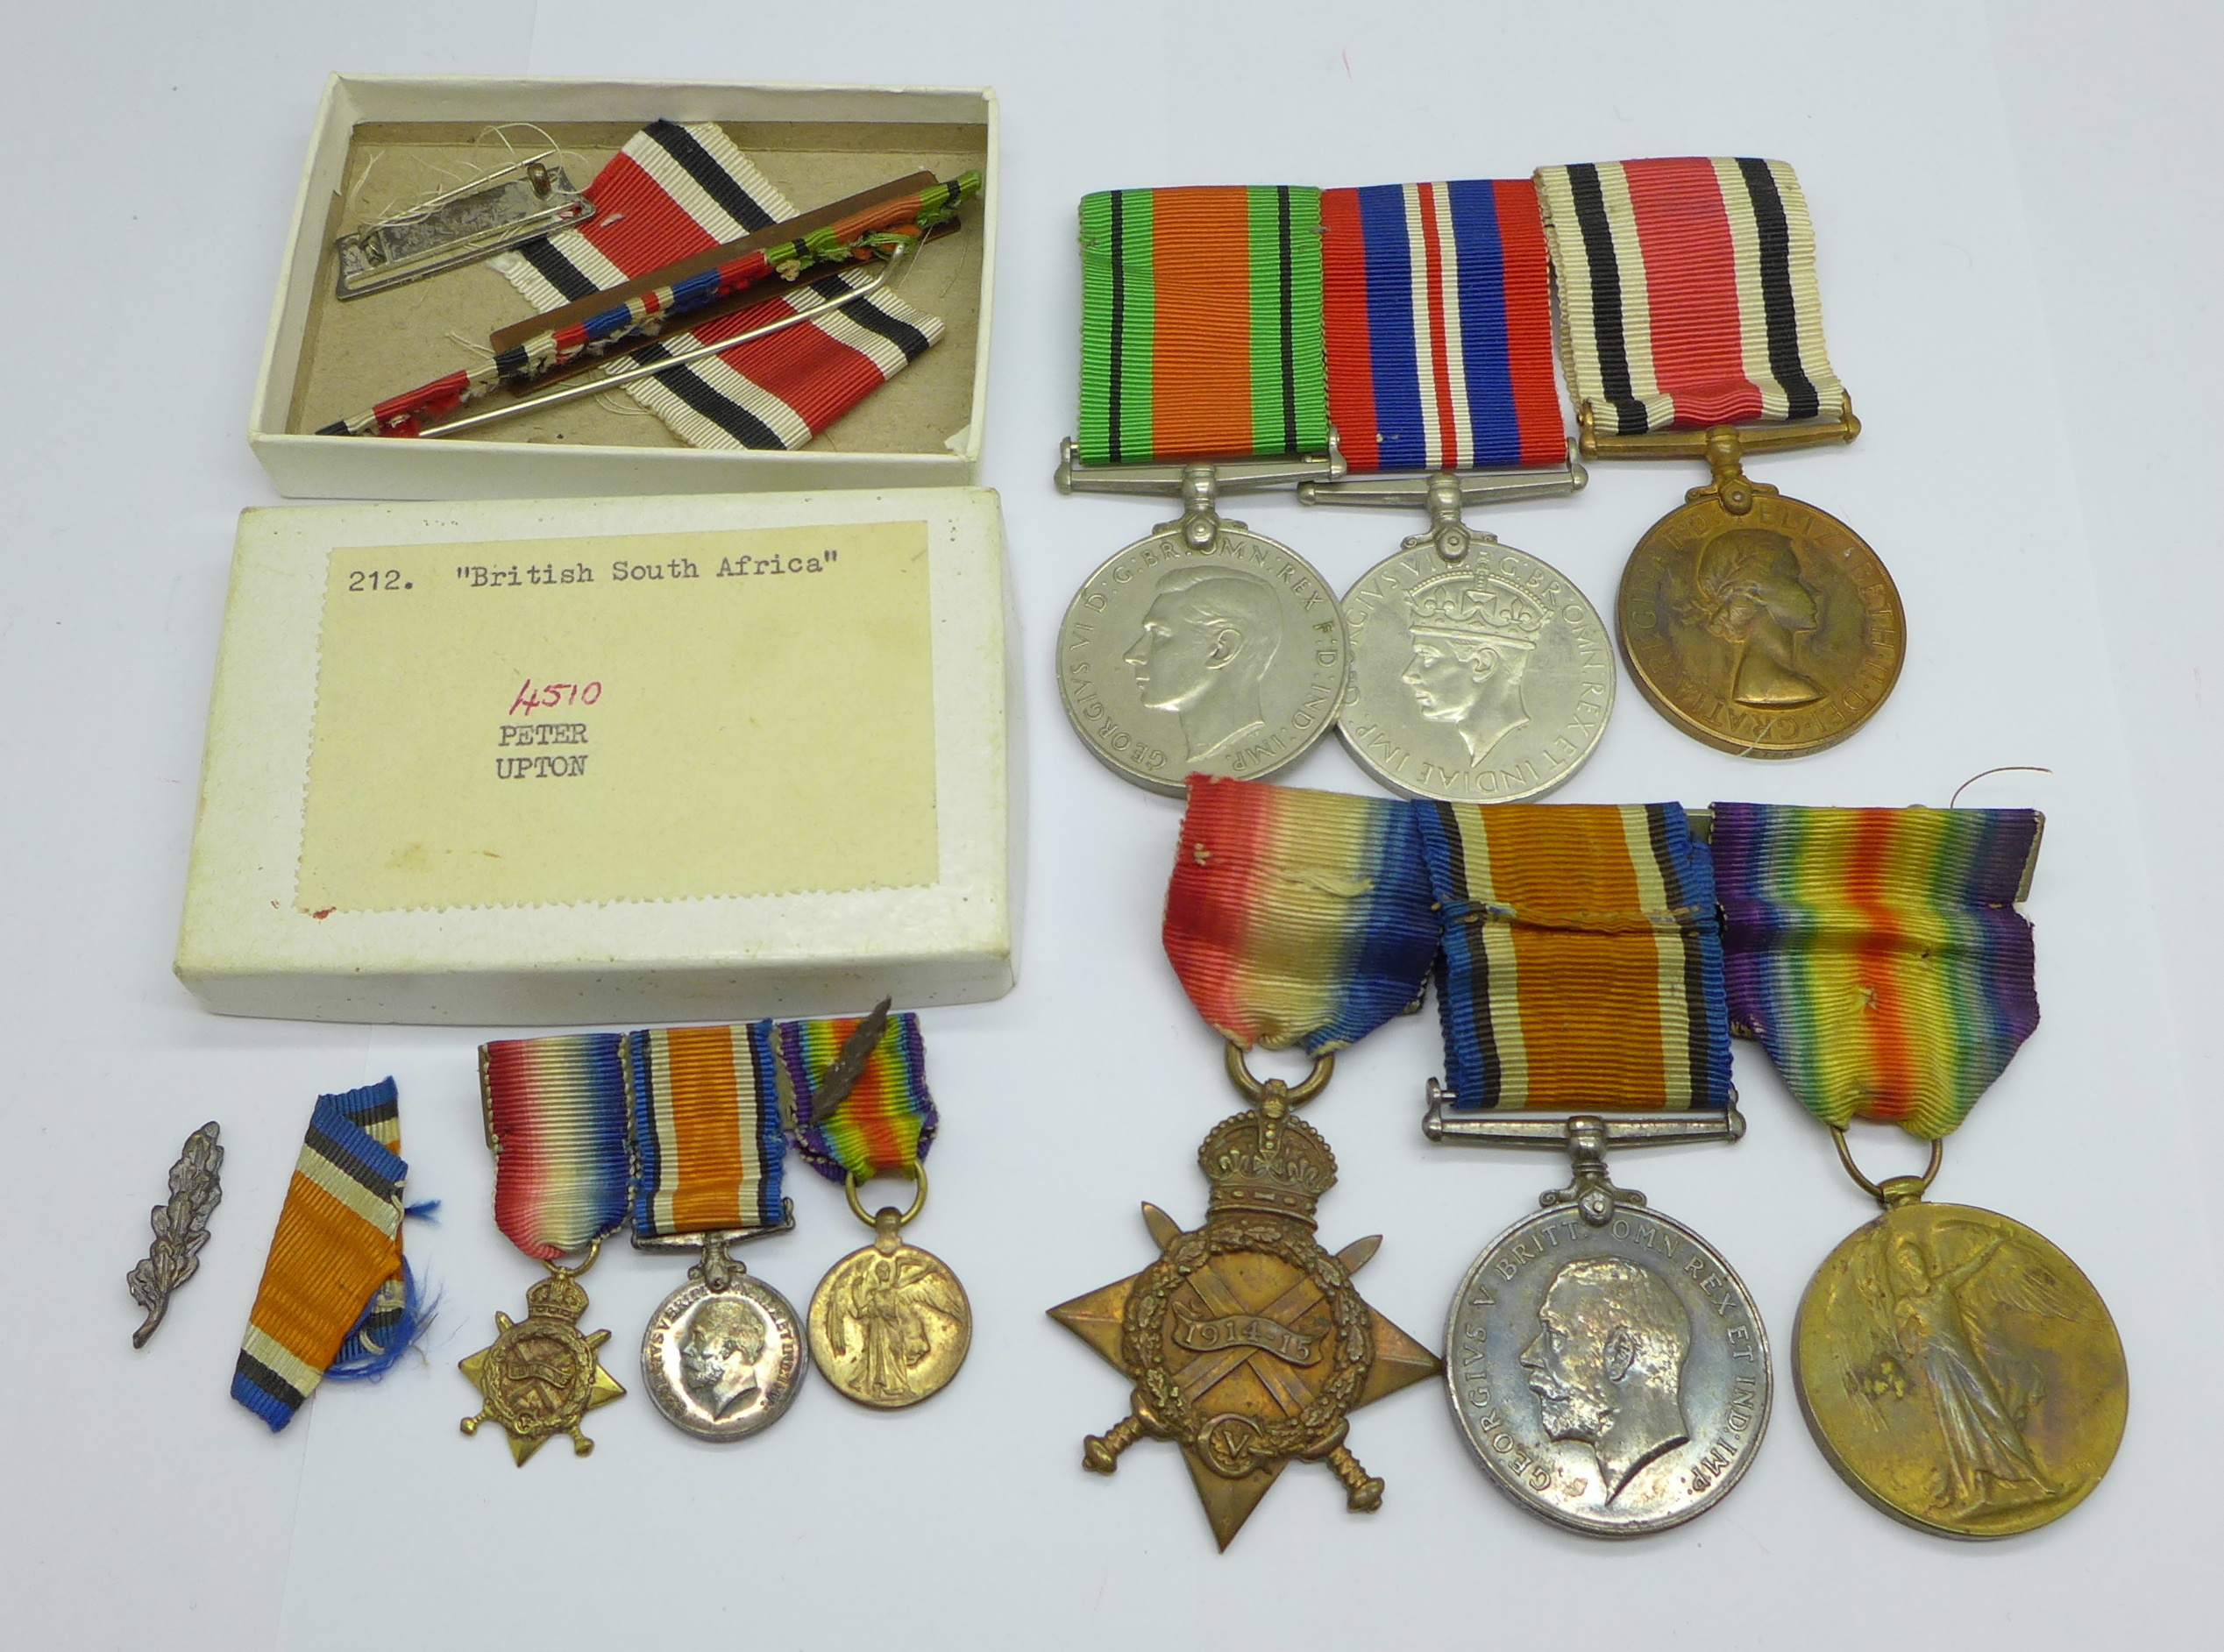 A family group of medals, three WWII medals including Special Constable, a trio of WWI medals to